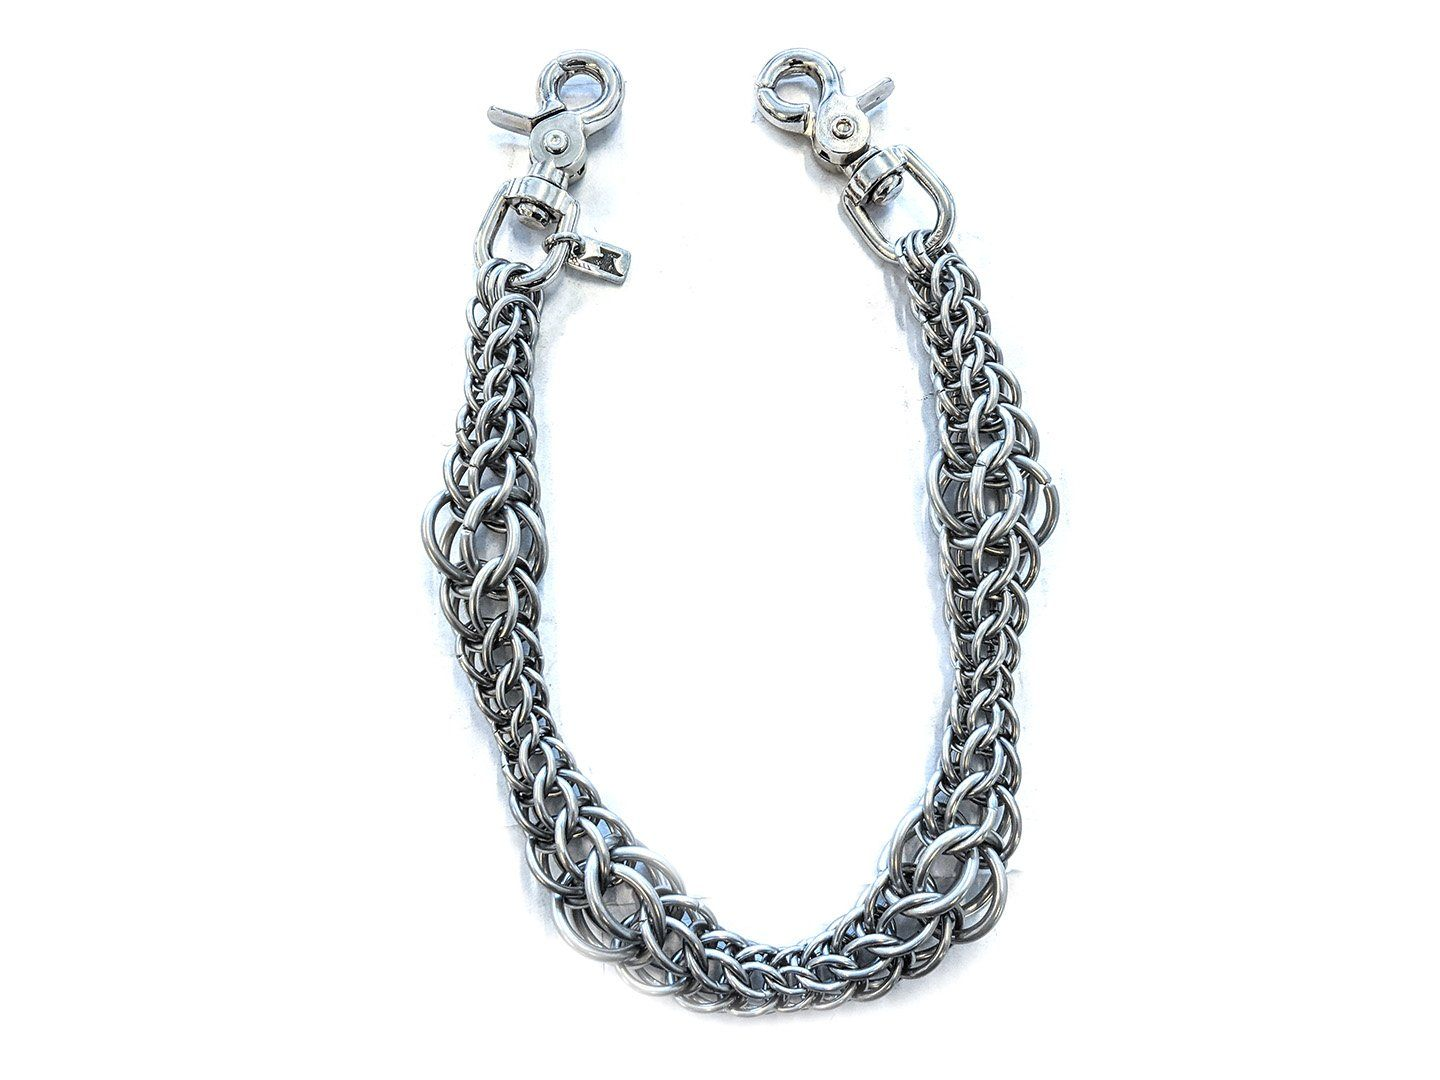 22 Inch Persian Chain Mail Wallet Chain - Tapered Gauge